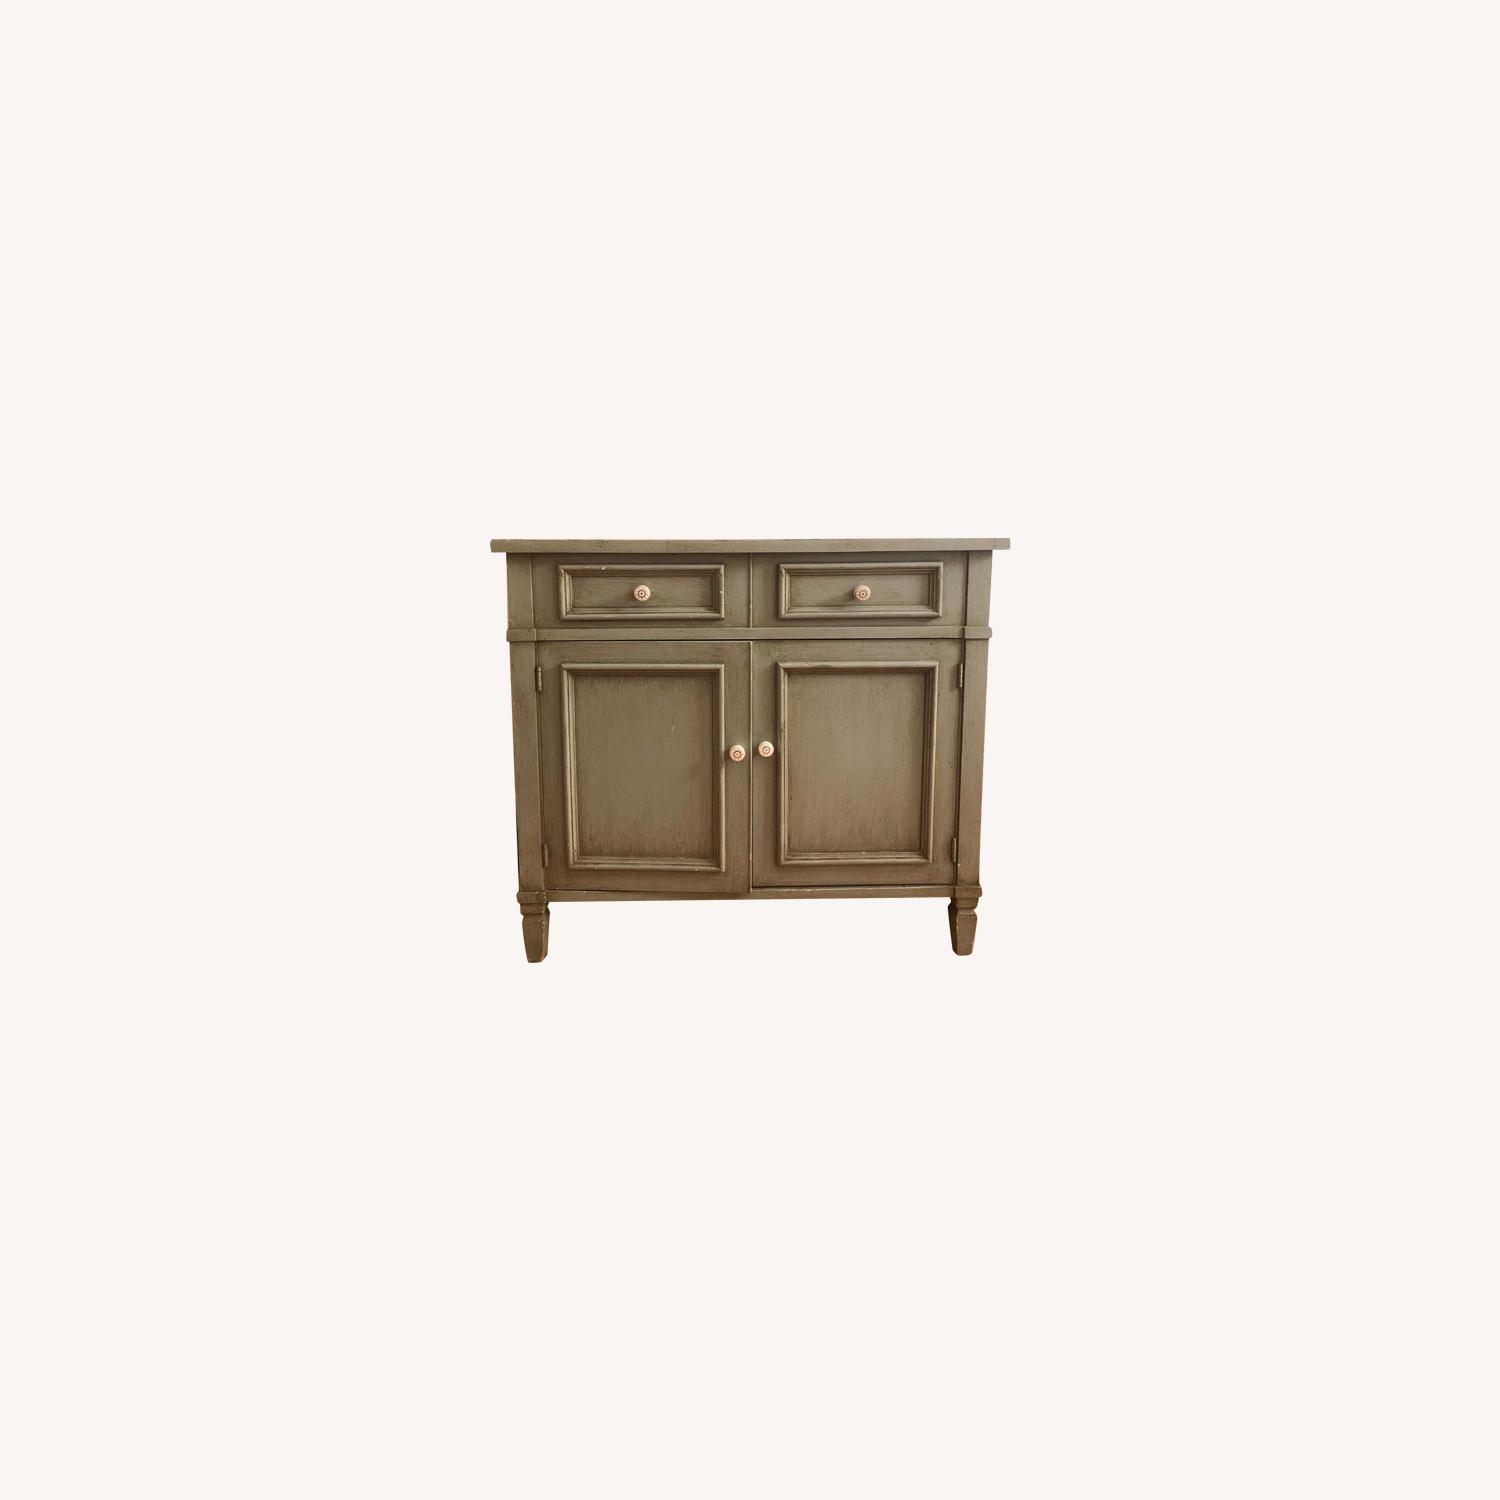 Distressed Wood Cabinet - image-0